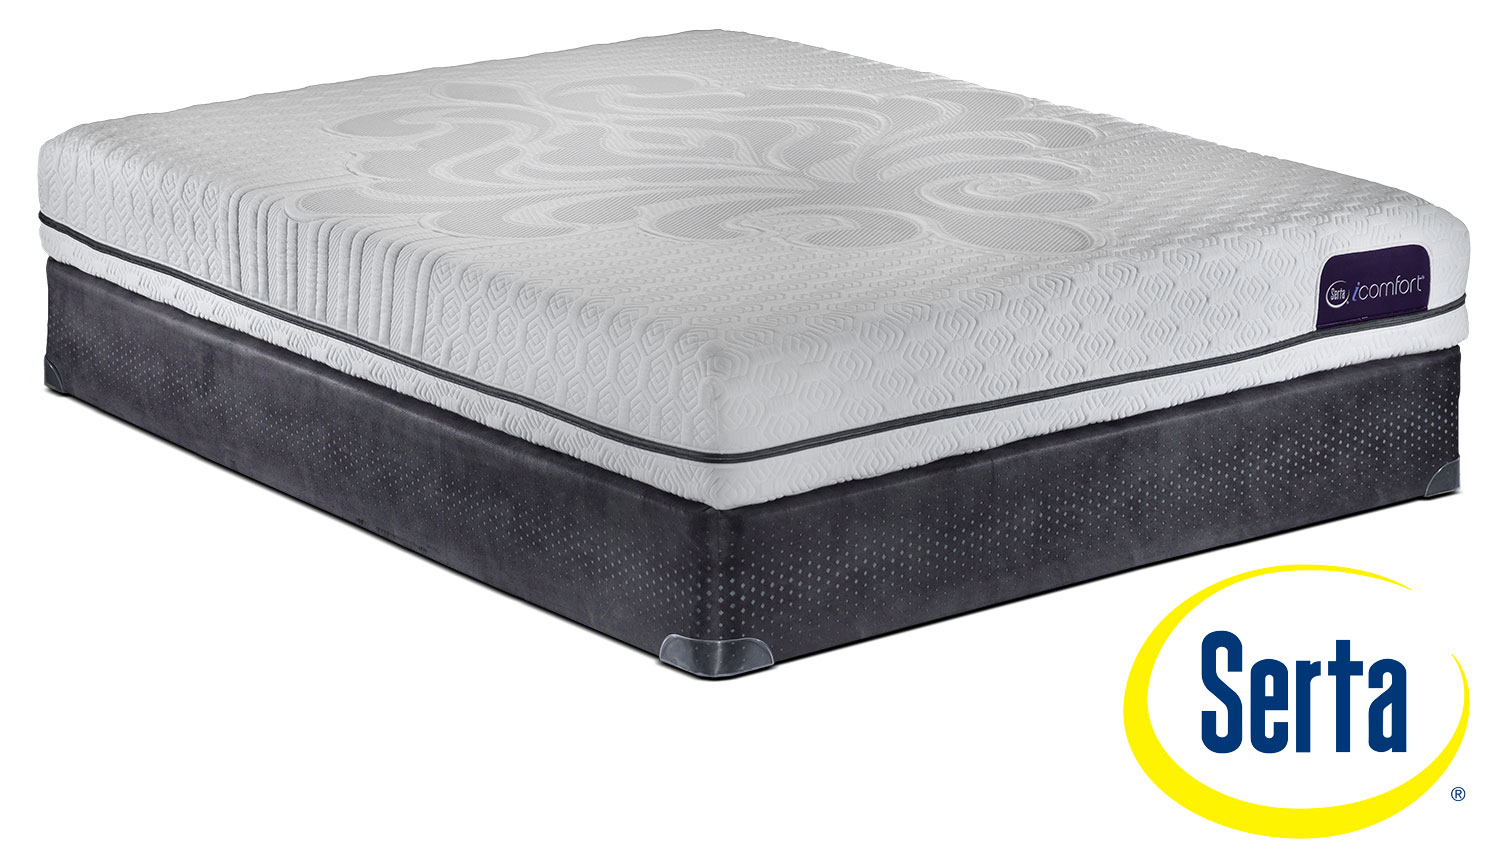 Serta Icomfort Eco Levity Firm Queen Mattress And Boxspring Set Leon 39 S